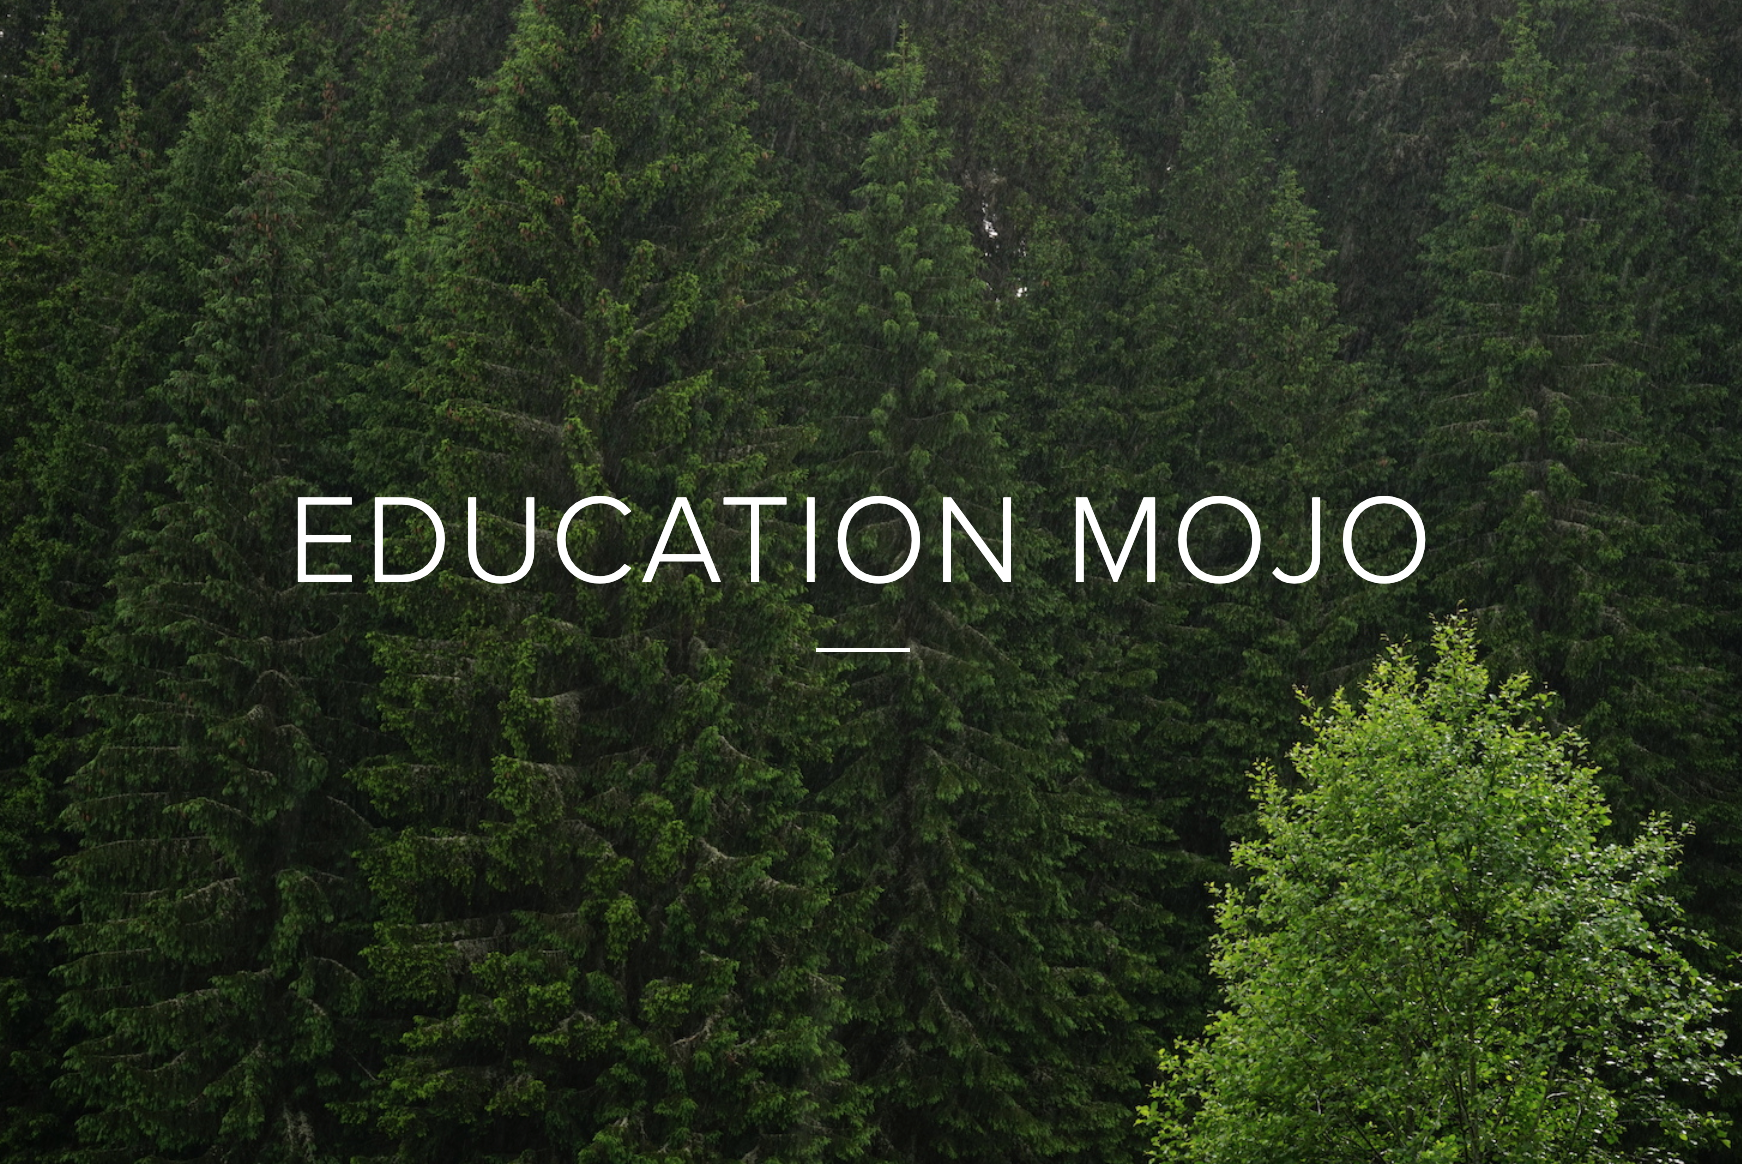 education mojo la foresta